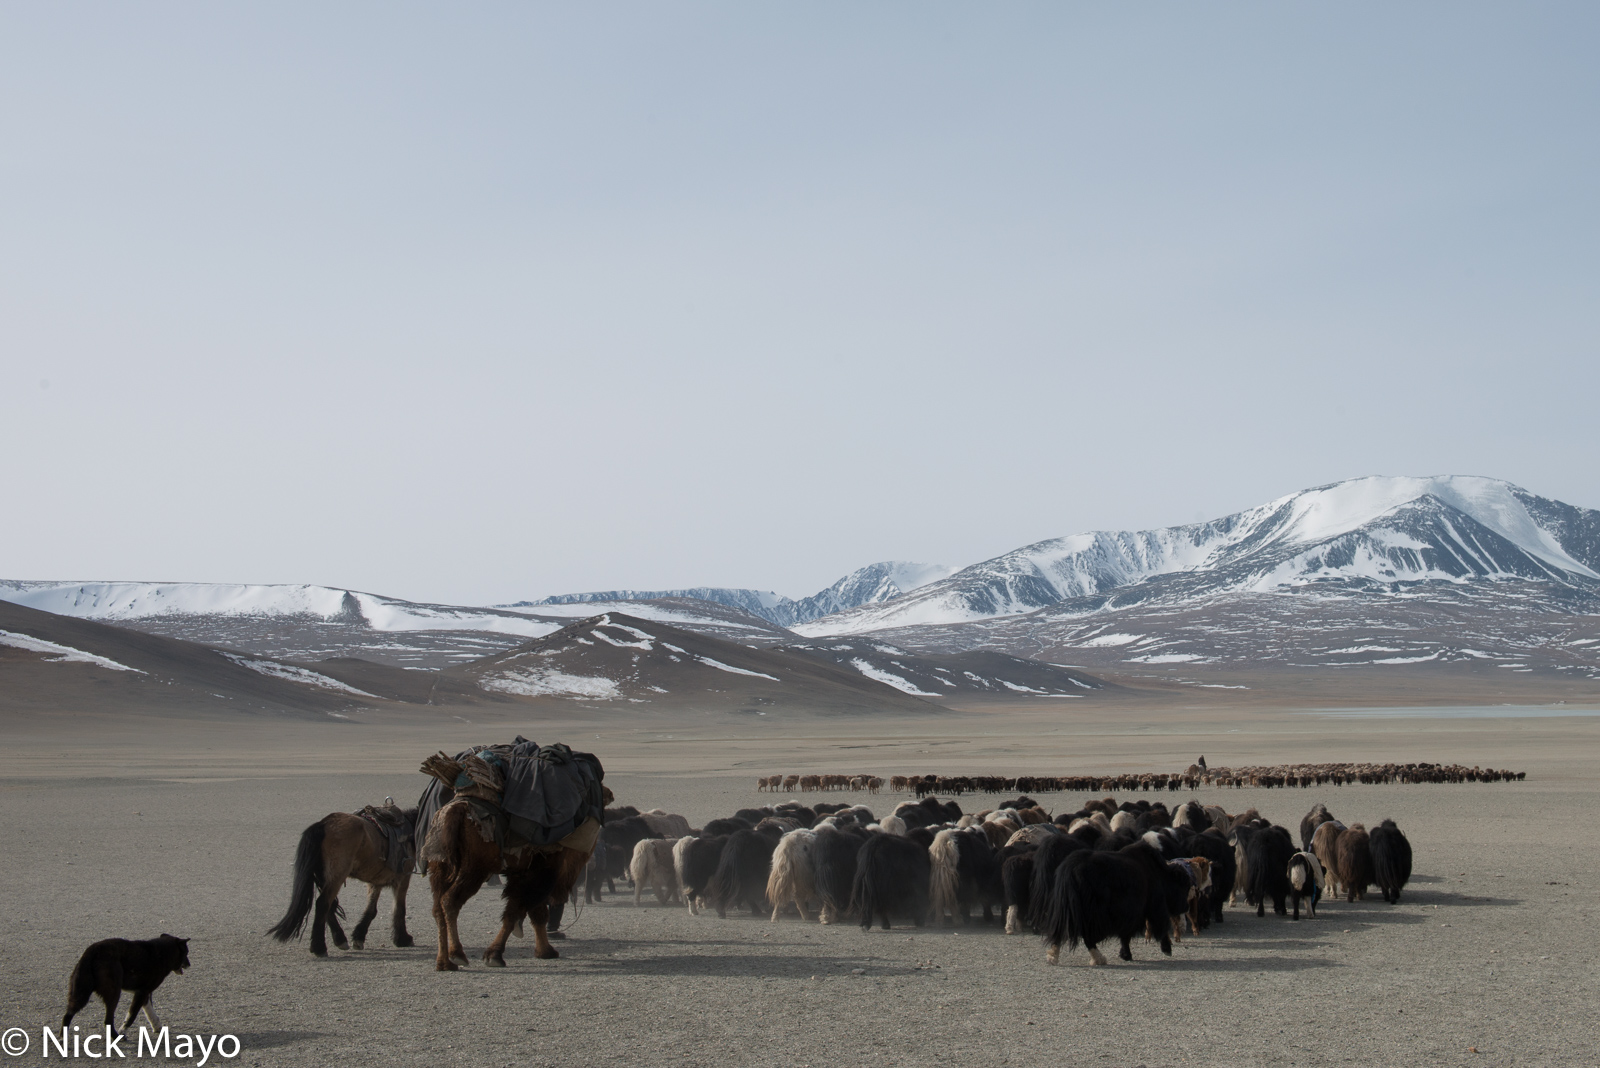 Bayan-Ölgii, Camel, Dog, Goat, Herding, Horse, Kazakh, Mongolia, Pack Animal, Sheep, Yak, photo